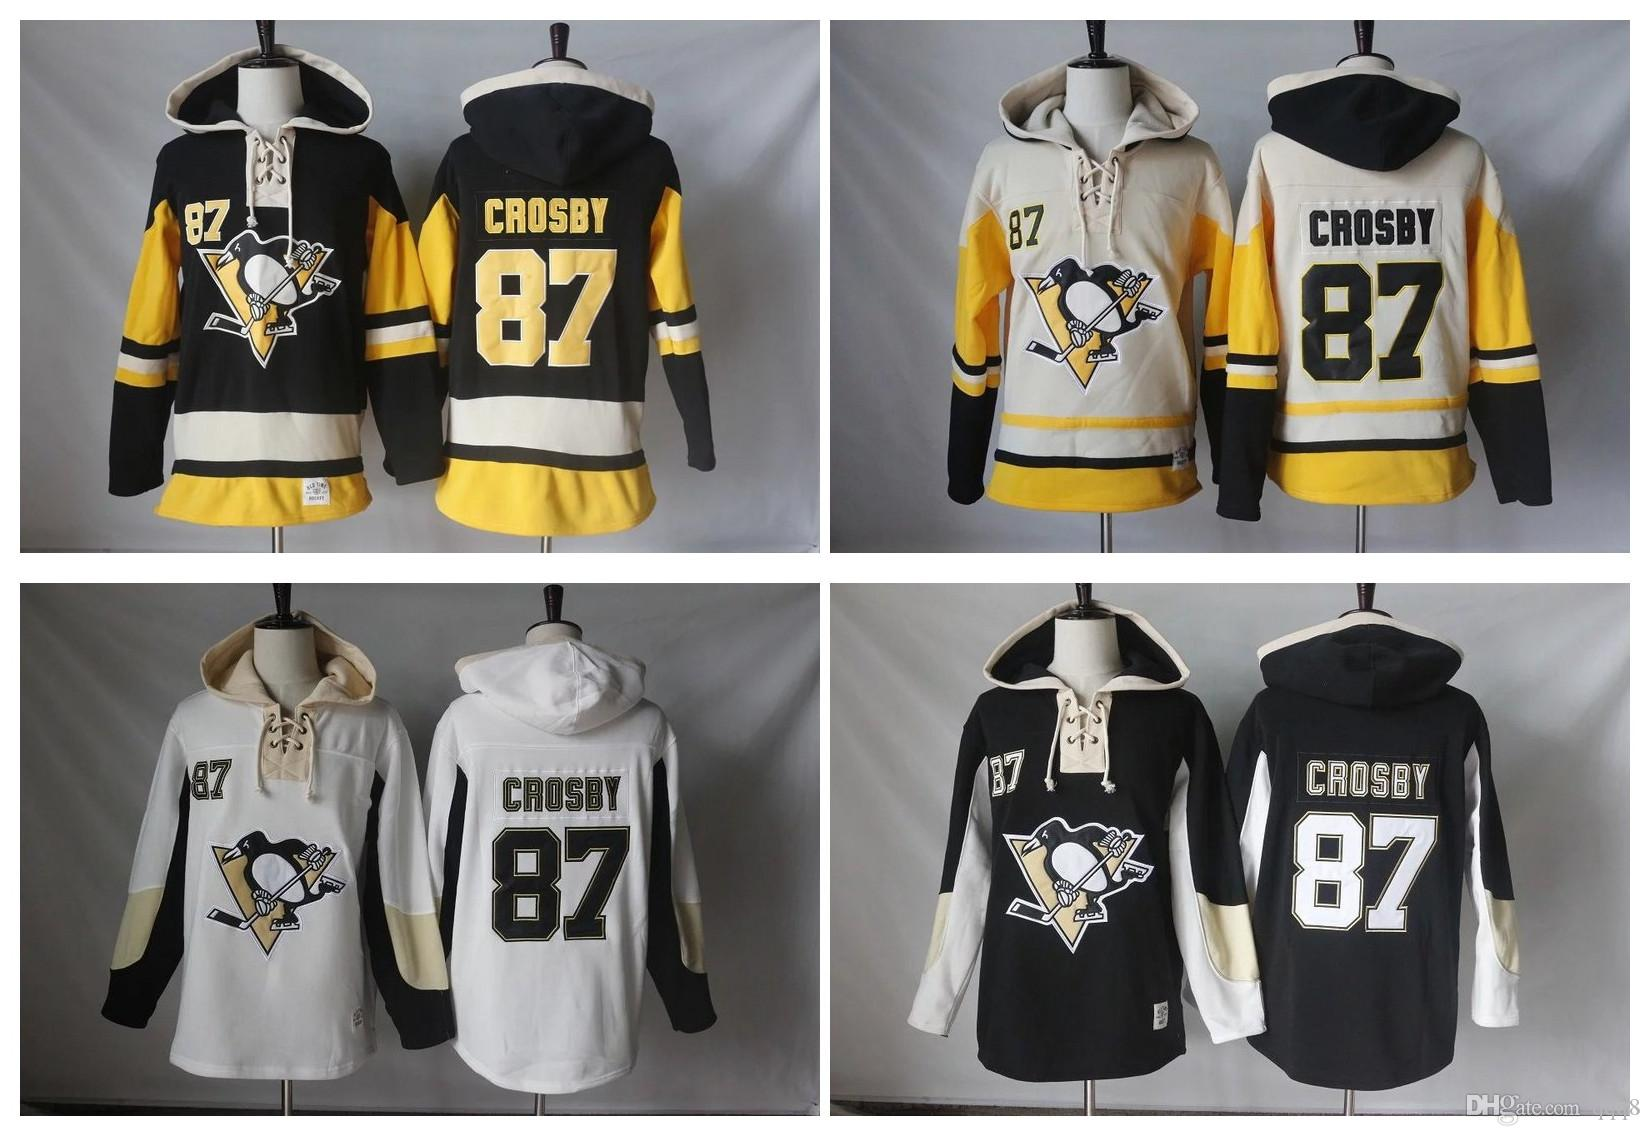 5c4f0a3d9 High Quality ! 2016 New Old Time Hockey Jerseys Pittsburgh Penguins 87  Sidney Crosby Hoodie Pullover Sports Sweatshirts Winter Jacket Detroit Red  Wings ...